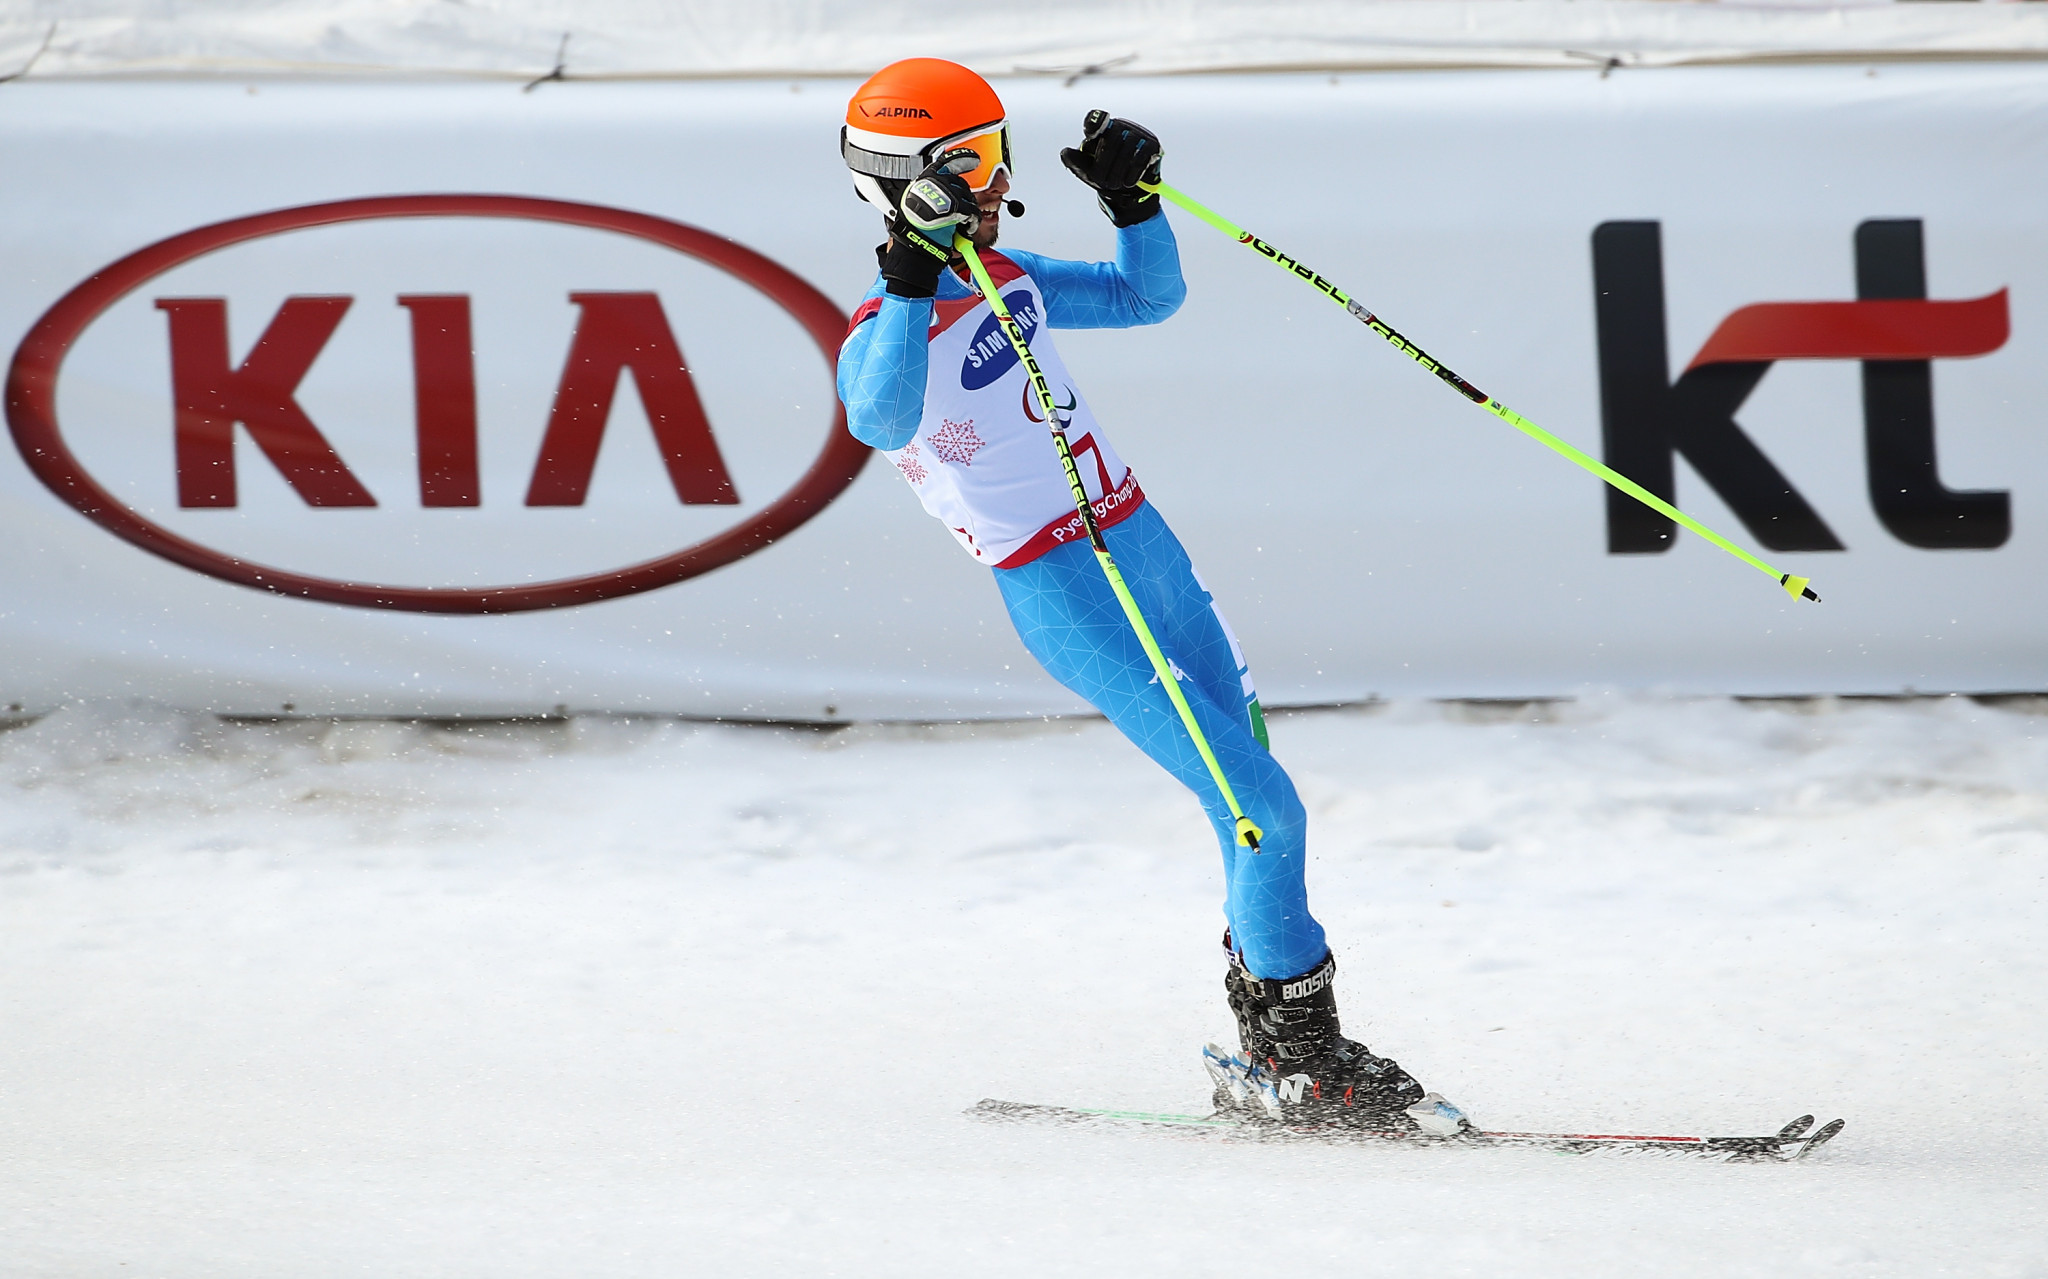 Bertagnolli enjoys home victory at World Para Alpine Skiing World Cup